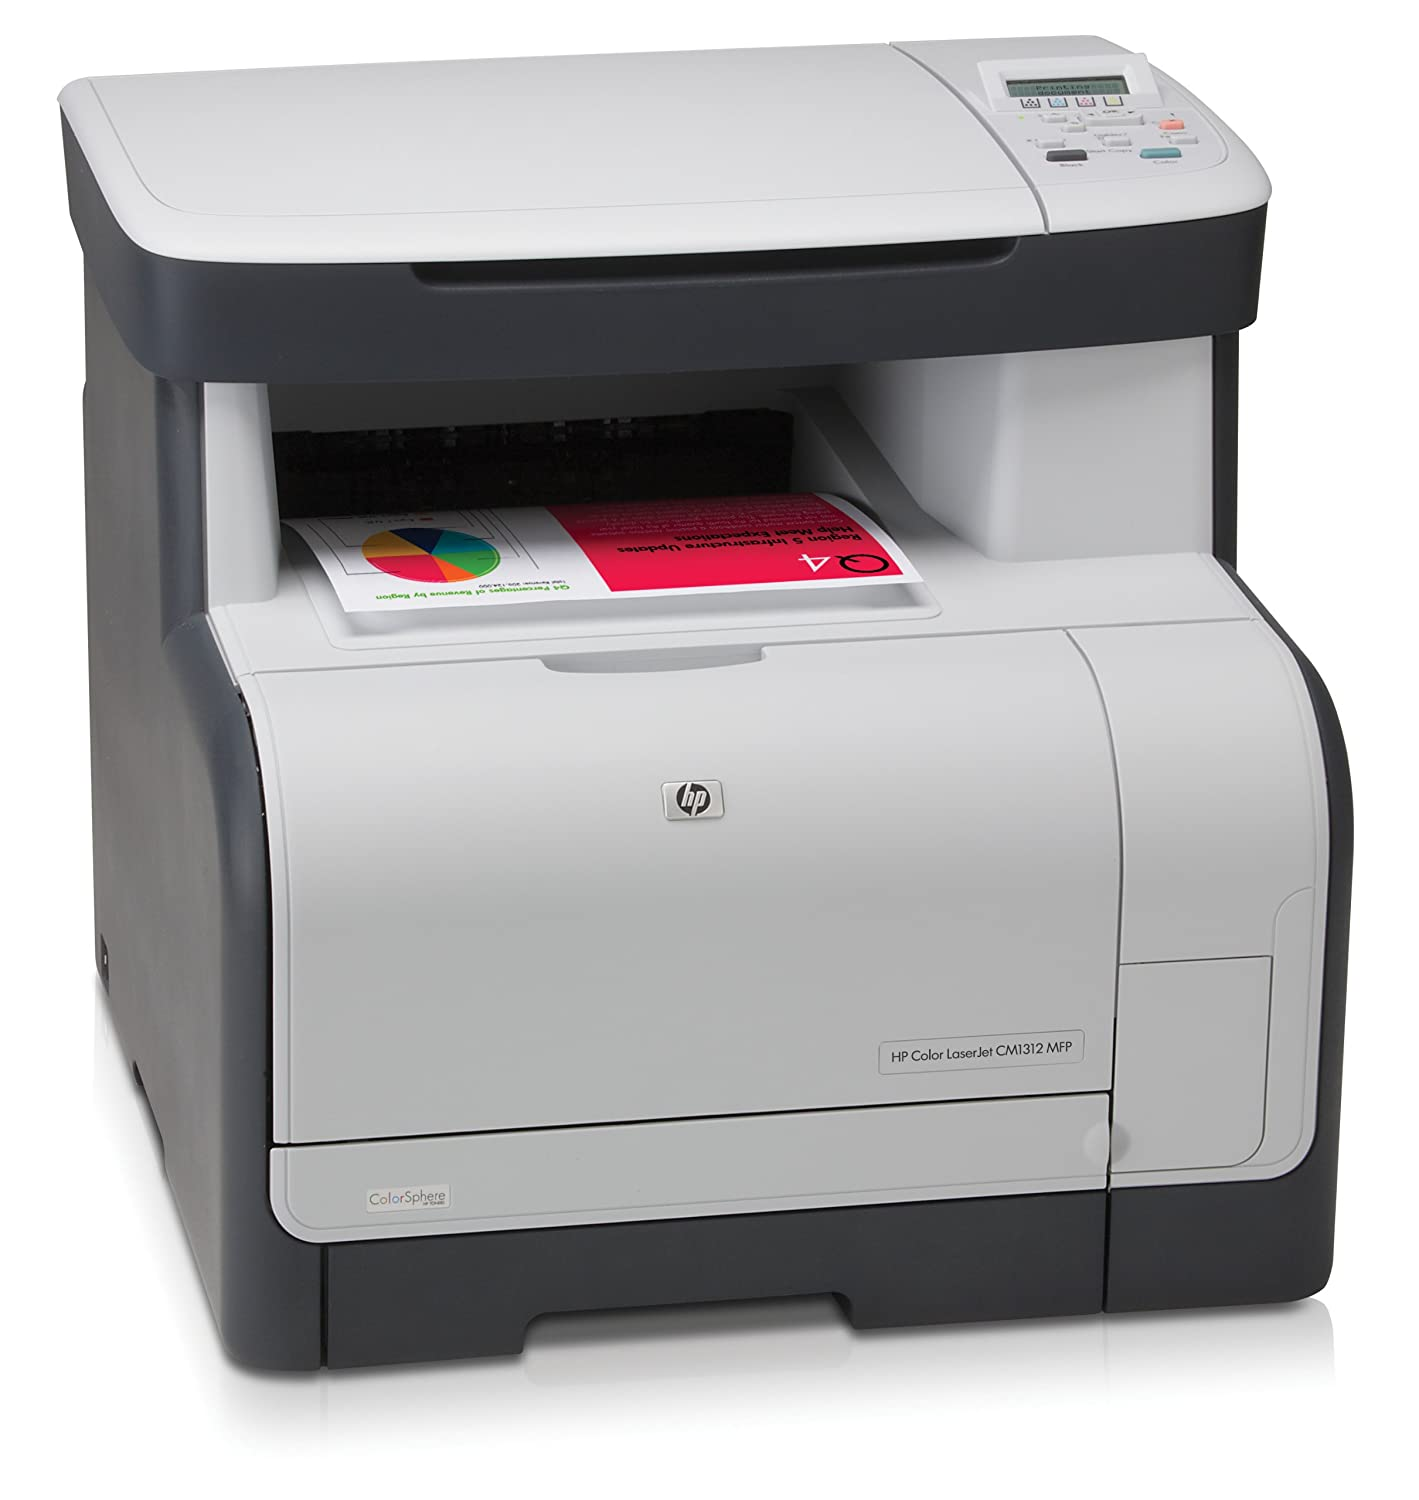 HP Color LaserJet CM1312 MFP - Multifunction - colour: Amazon.co.uk:  Electronics